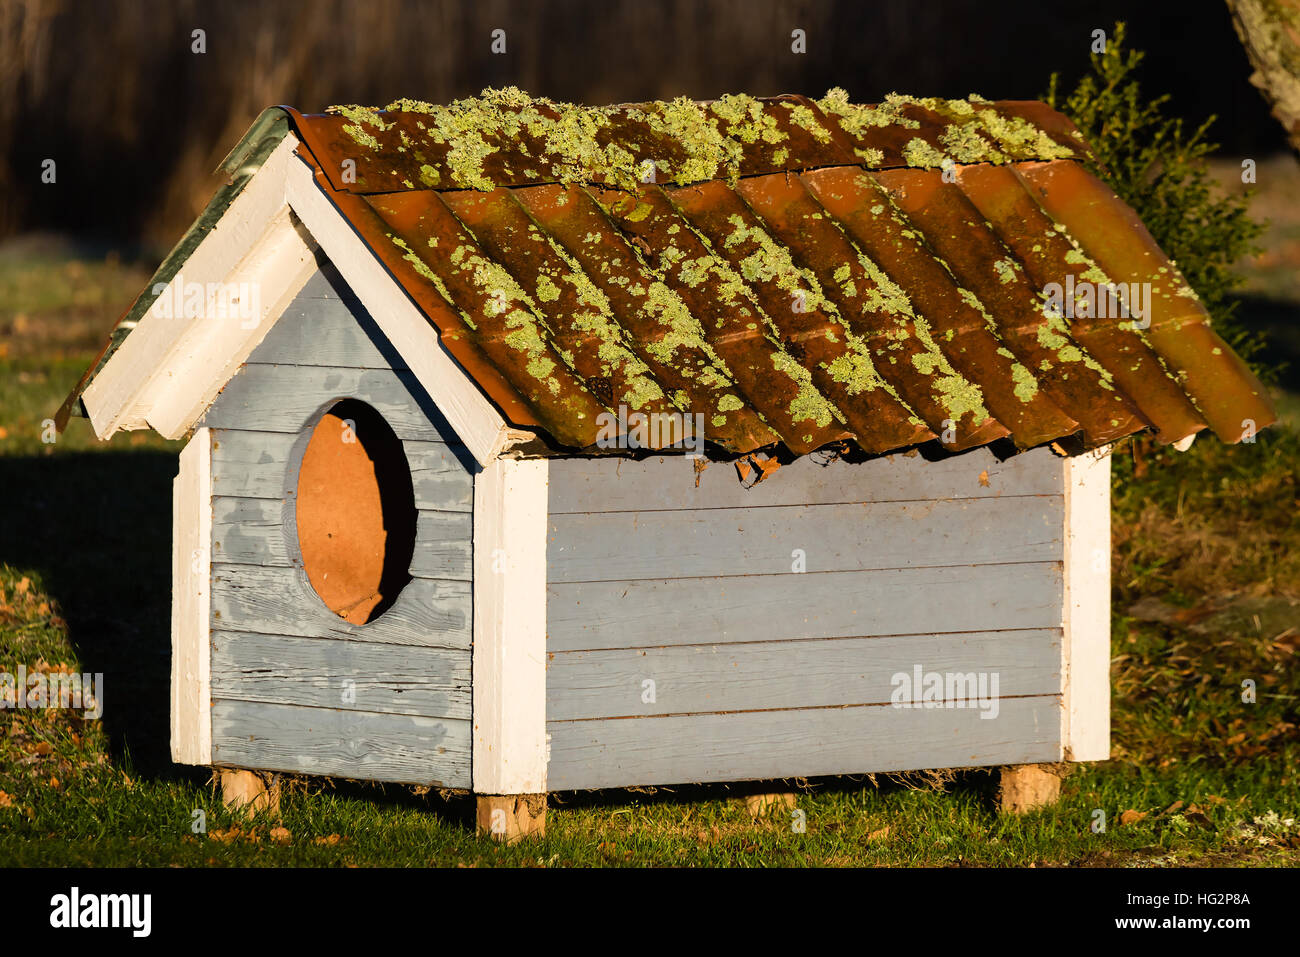 Small Doghouse With Circular Hole And Lichen Growing On The Roof. It Looks  Old And Weathered.